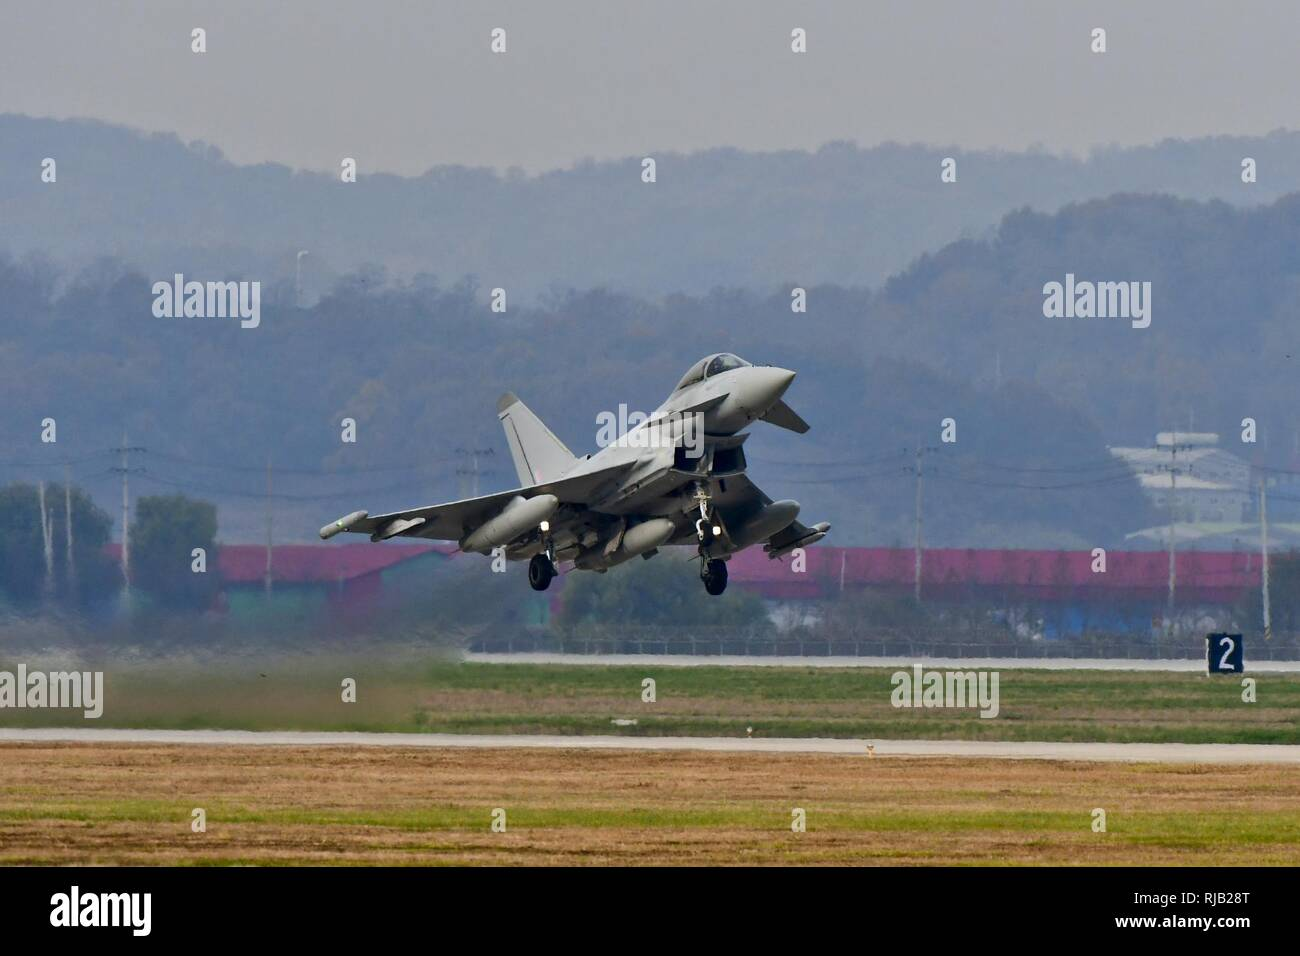 A Royal Air Force Eurofighter Typhoon FRG4 takes off at Osan Air Base, Republic of Korea, Nov. 7, 2016. The RAF deployed the largest number of assets on the Korean Peninsula since the Korean War during Invincible Shield, an interoperability exchange, from Nov. 1 – 10. - Stock Image